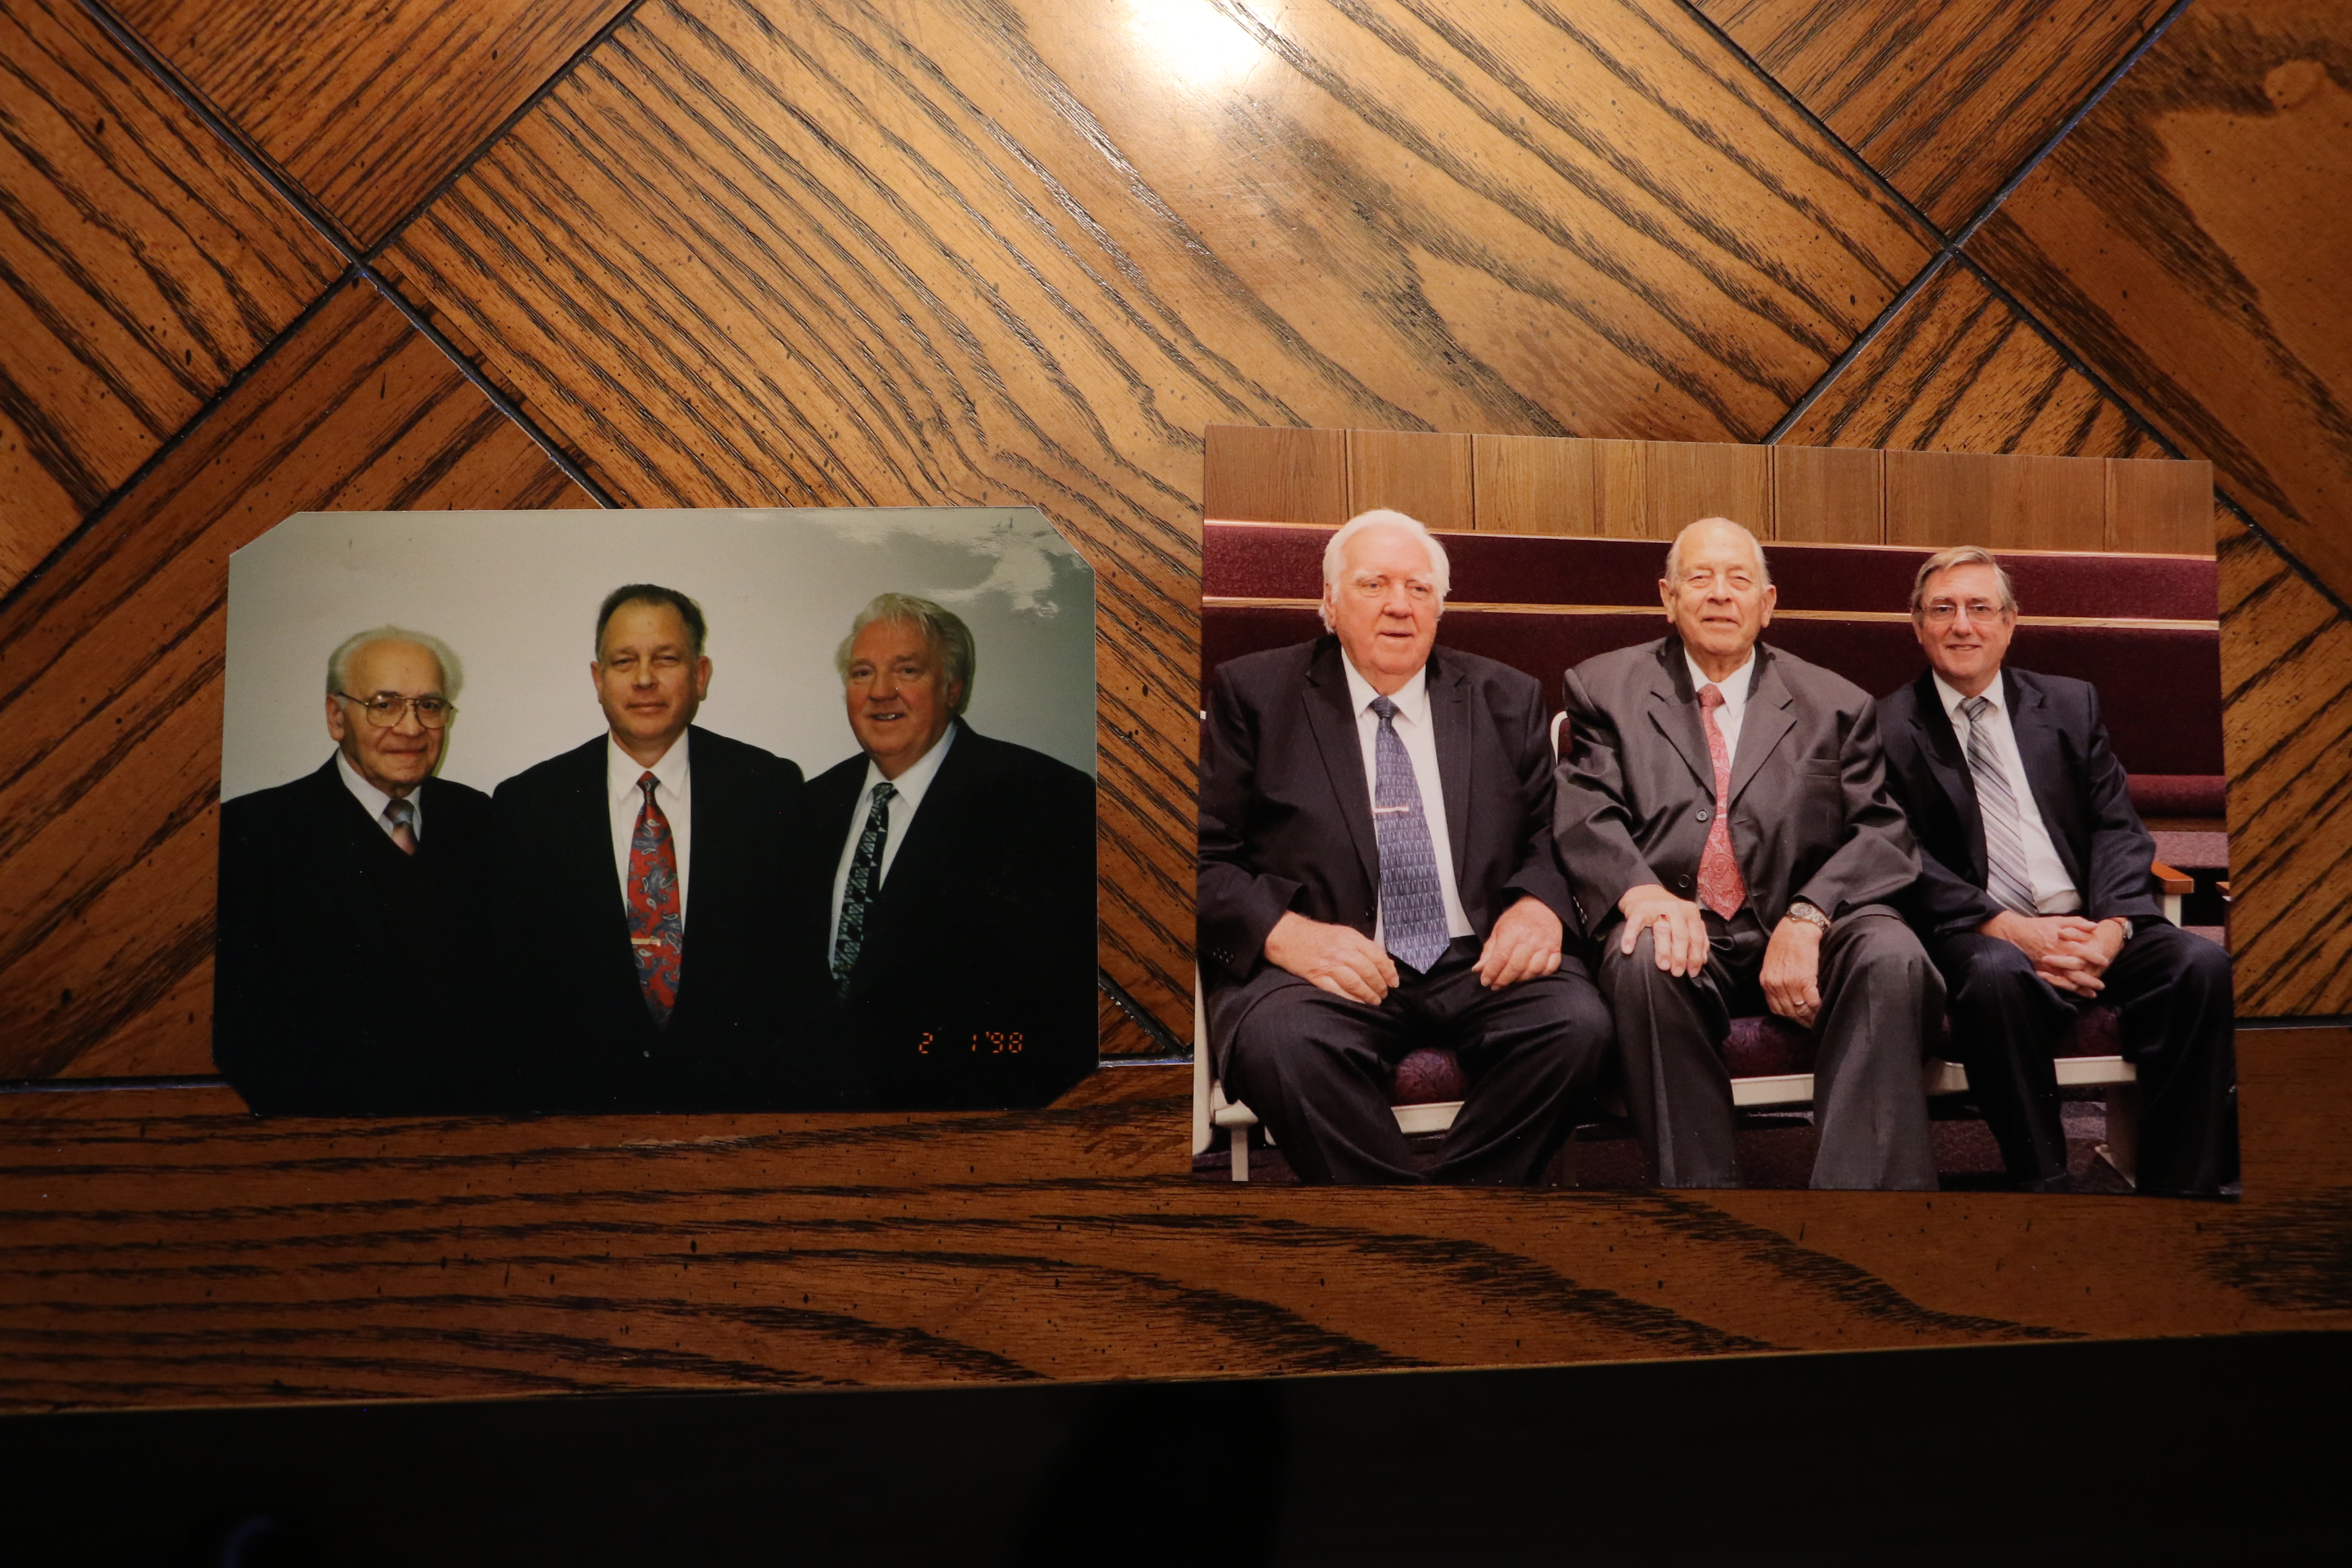 Side by side photos of Bishop Volker Diethelm Hagen with his counselors. The left photo was taken in 1998, about five years after he was set apart as bishop. The right photo was taken in 2019.